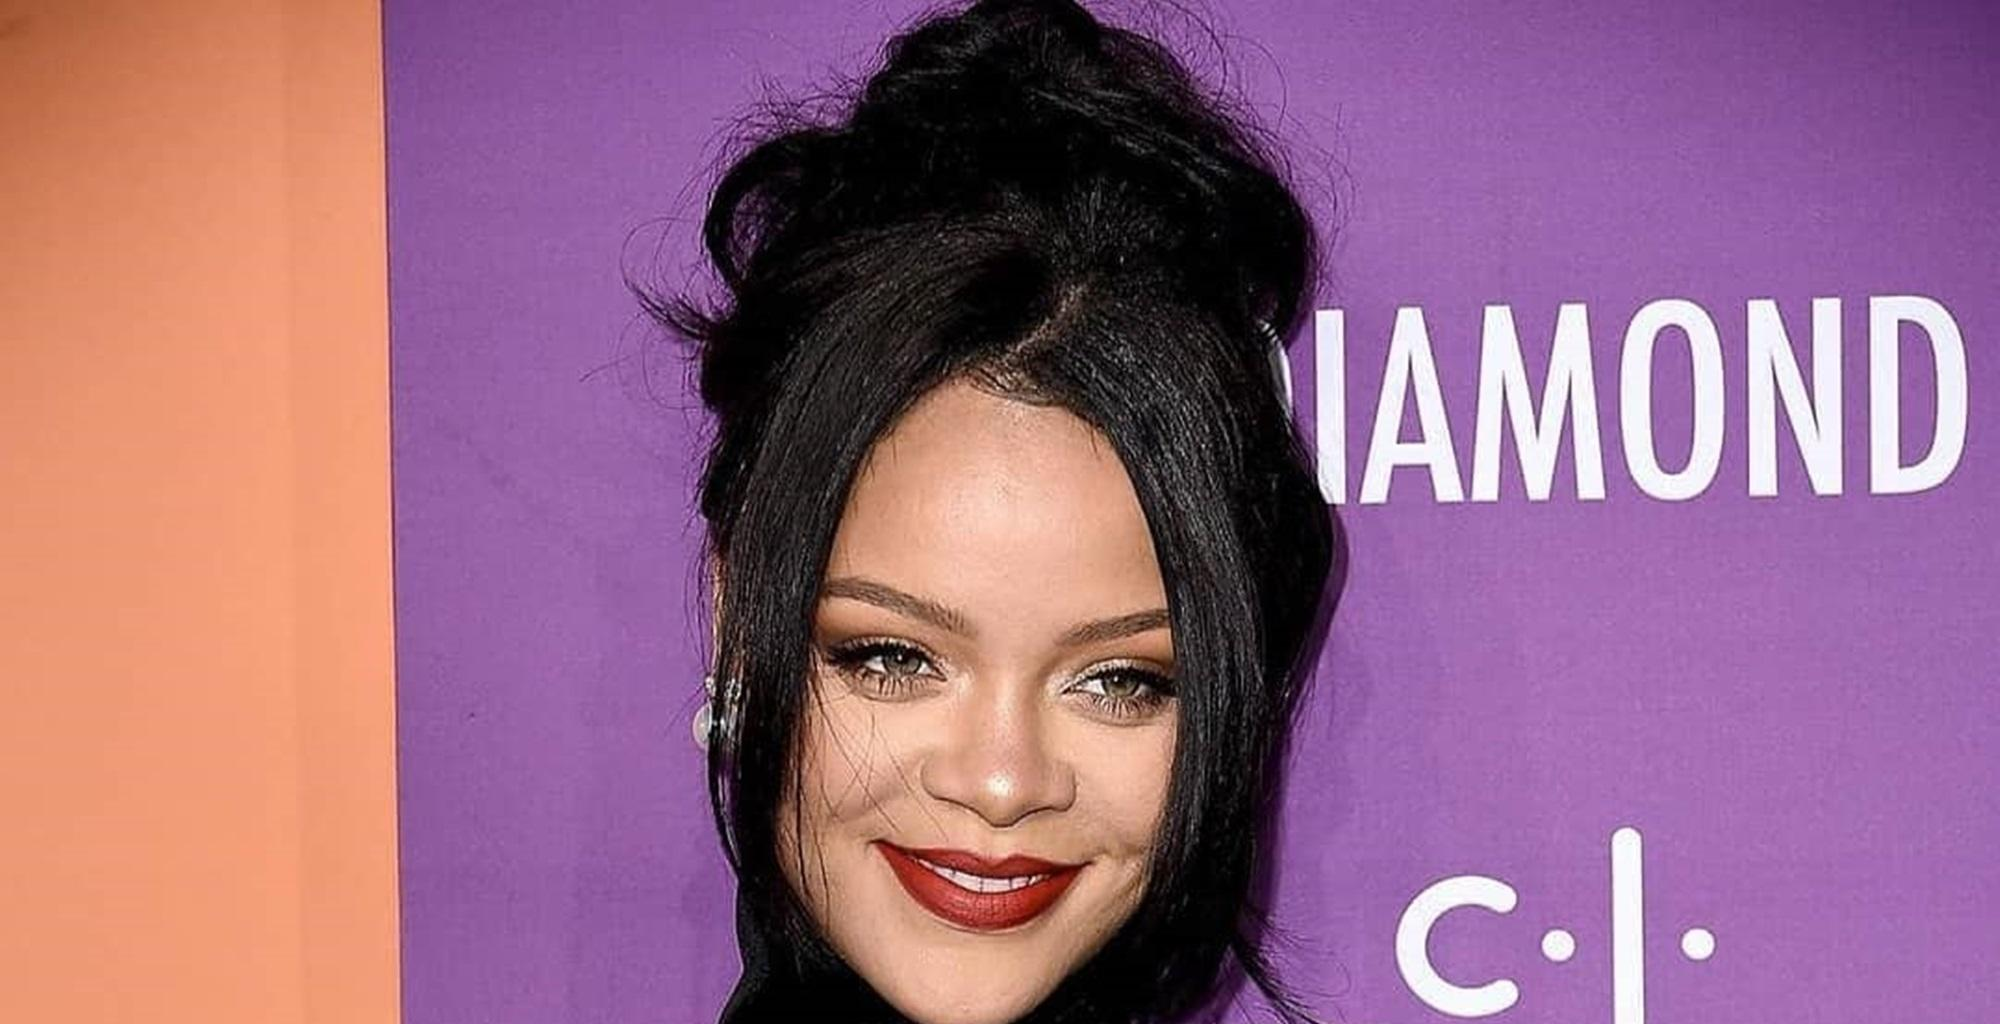 Rihanna Looks Very Classy In Vintage Masterpiece In New Photos As She Prepares For The New Chapter Of Her Life